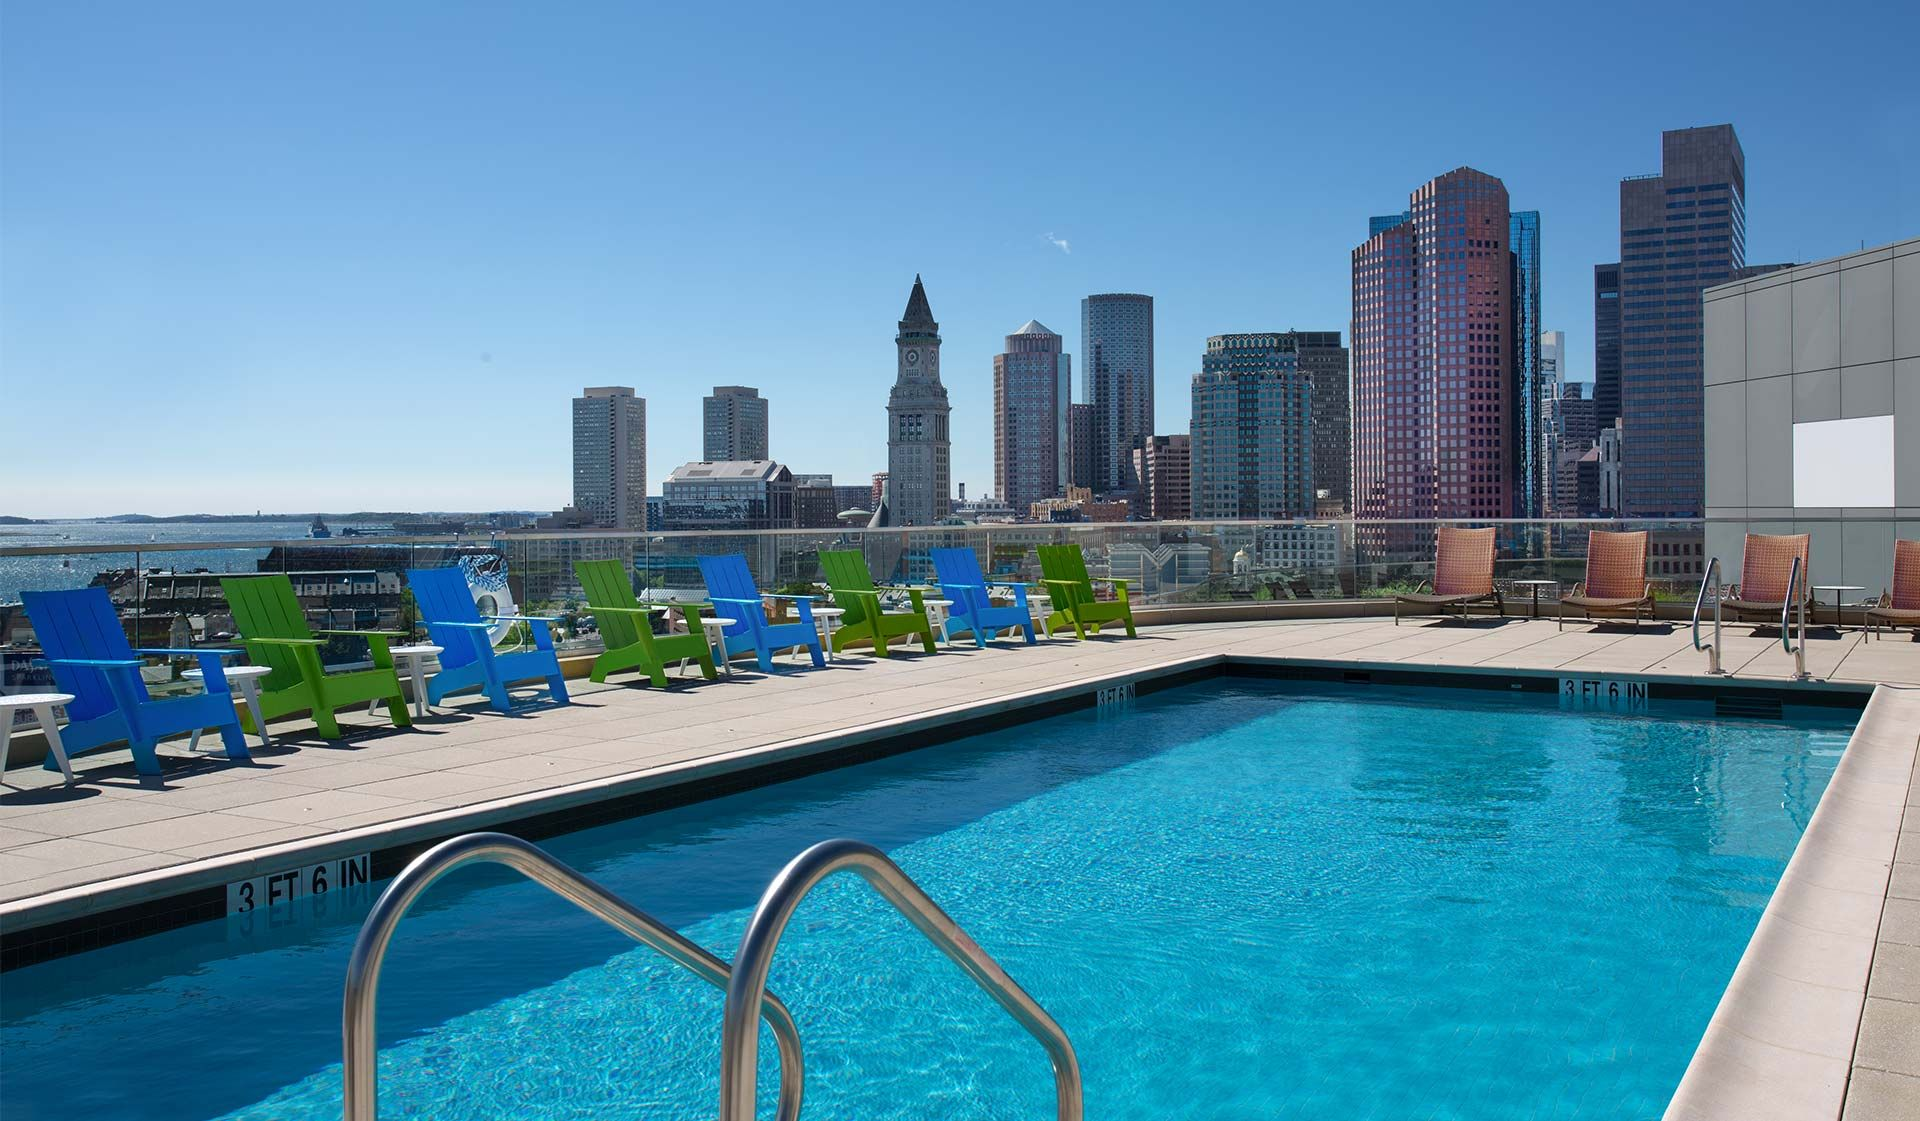 Take A Swim In The Rooftop Pool While Taking In The Views Rooftop Pool Pool Swimming Pools